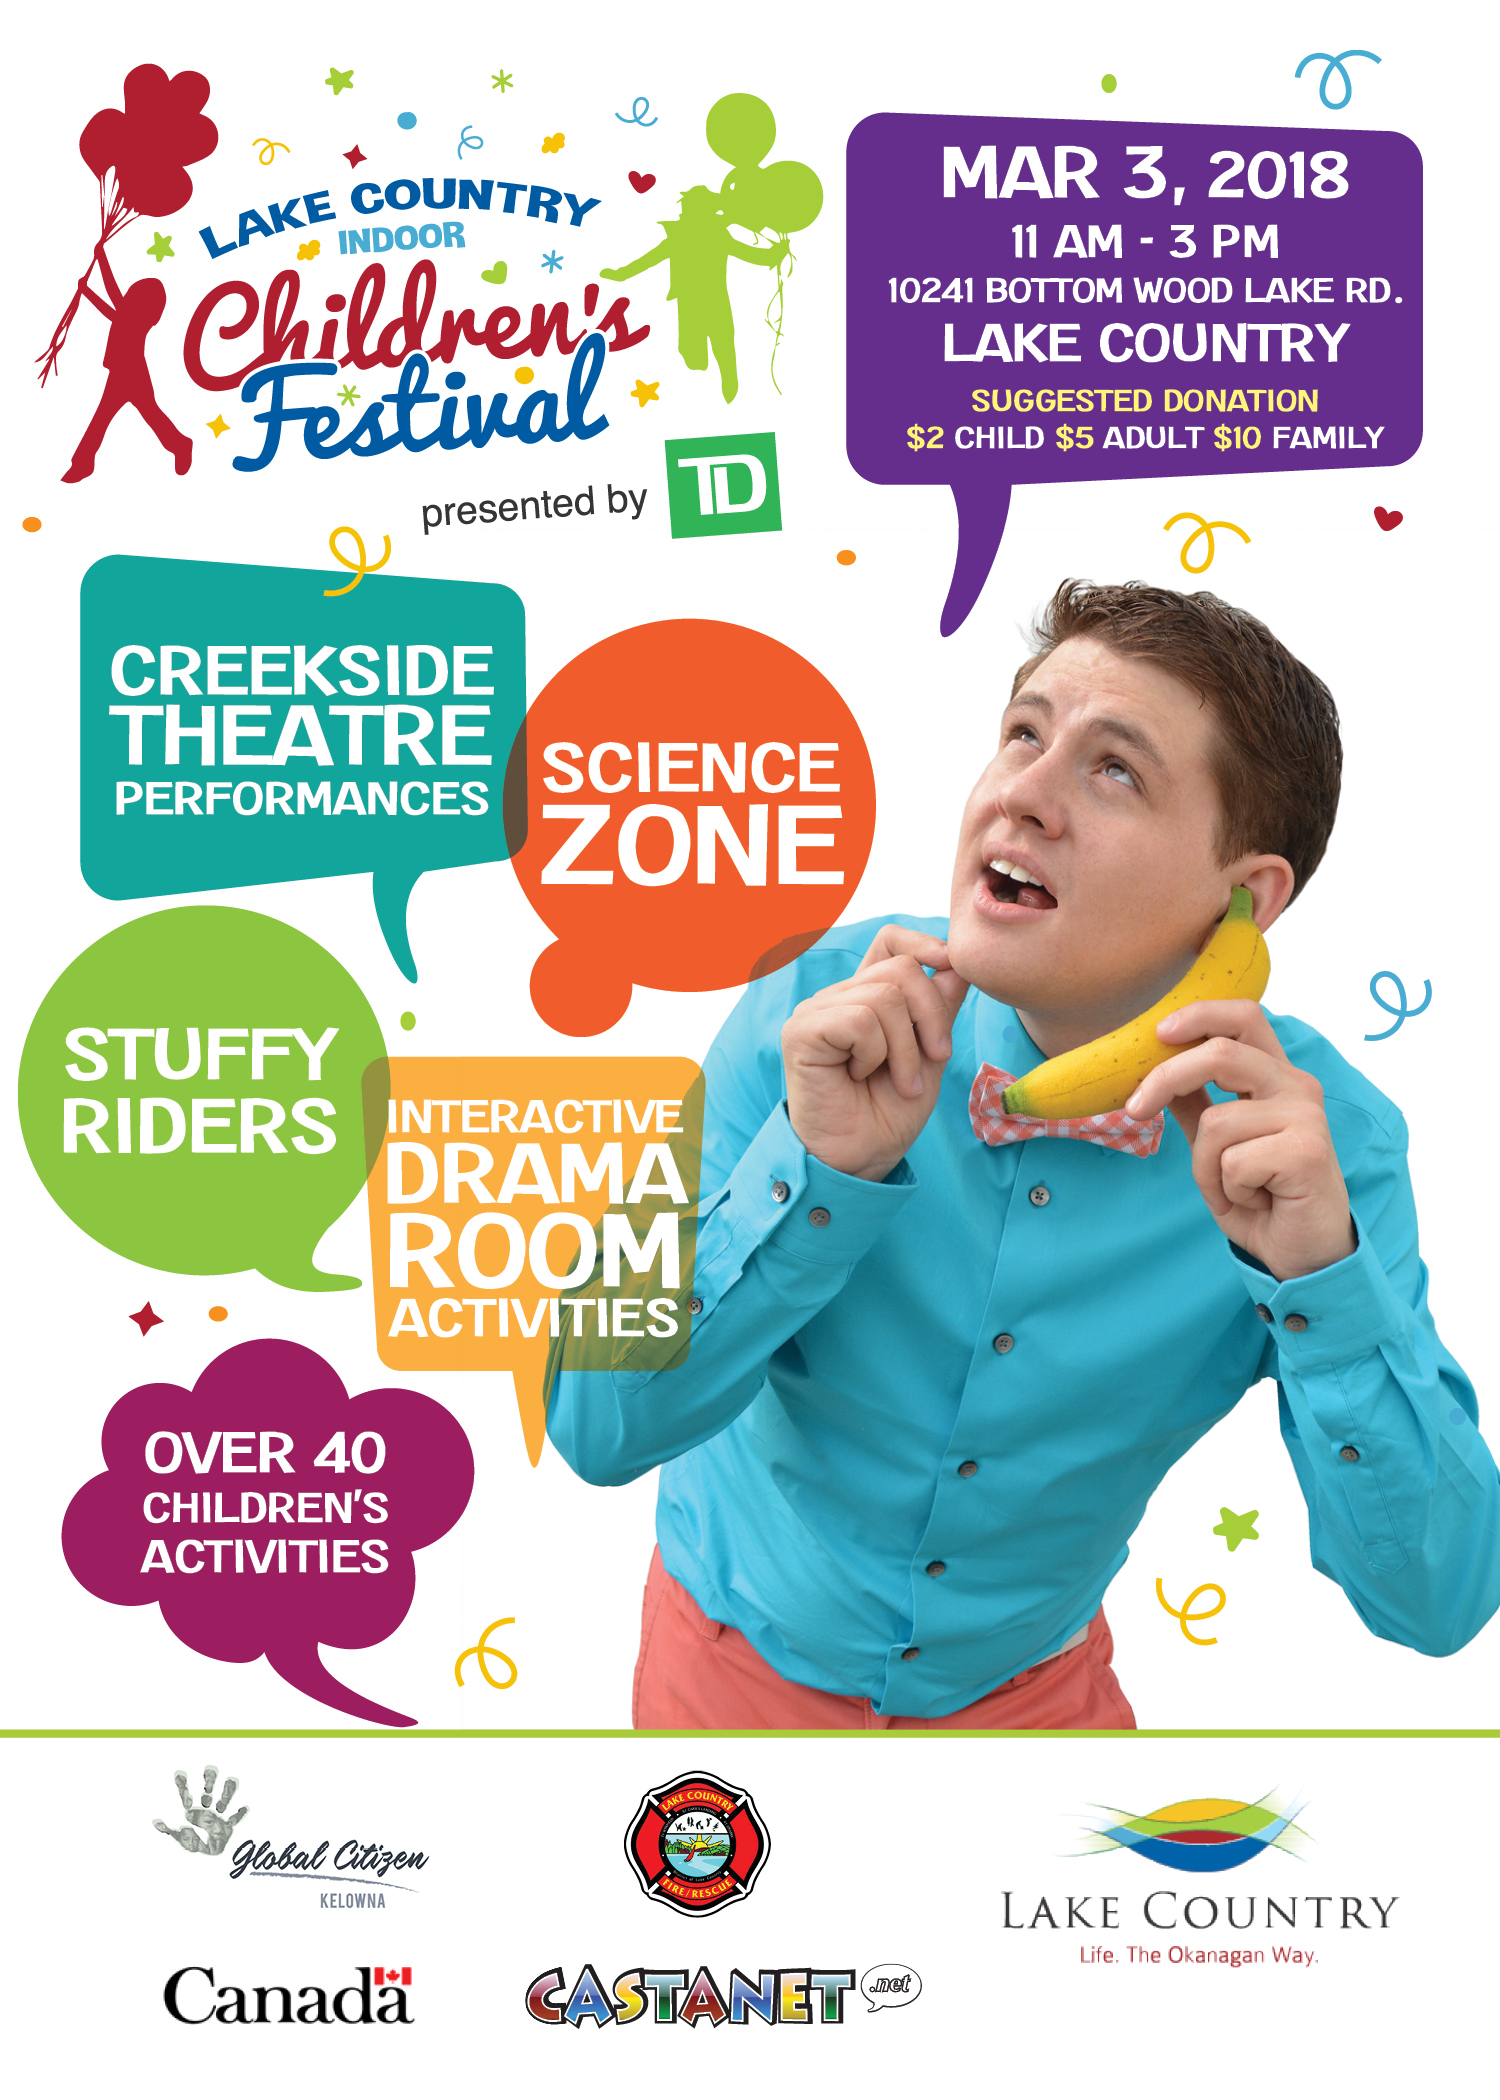 2018 Children's Festival March 3